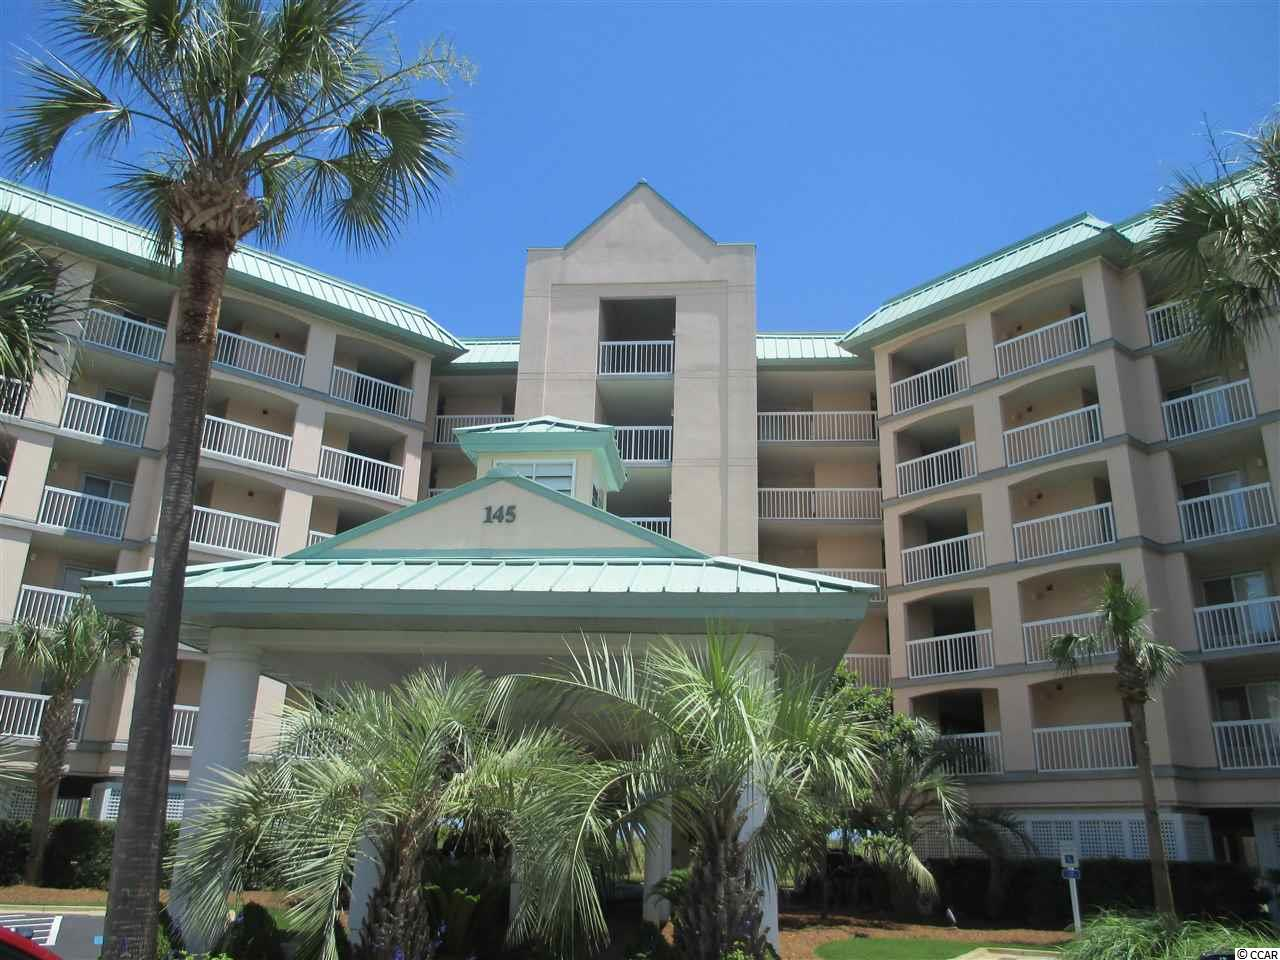 MLS#:1511399 Mid-Rise 4-6 Stories 109 Warwick